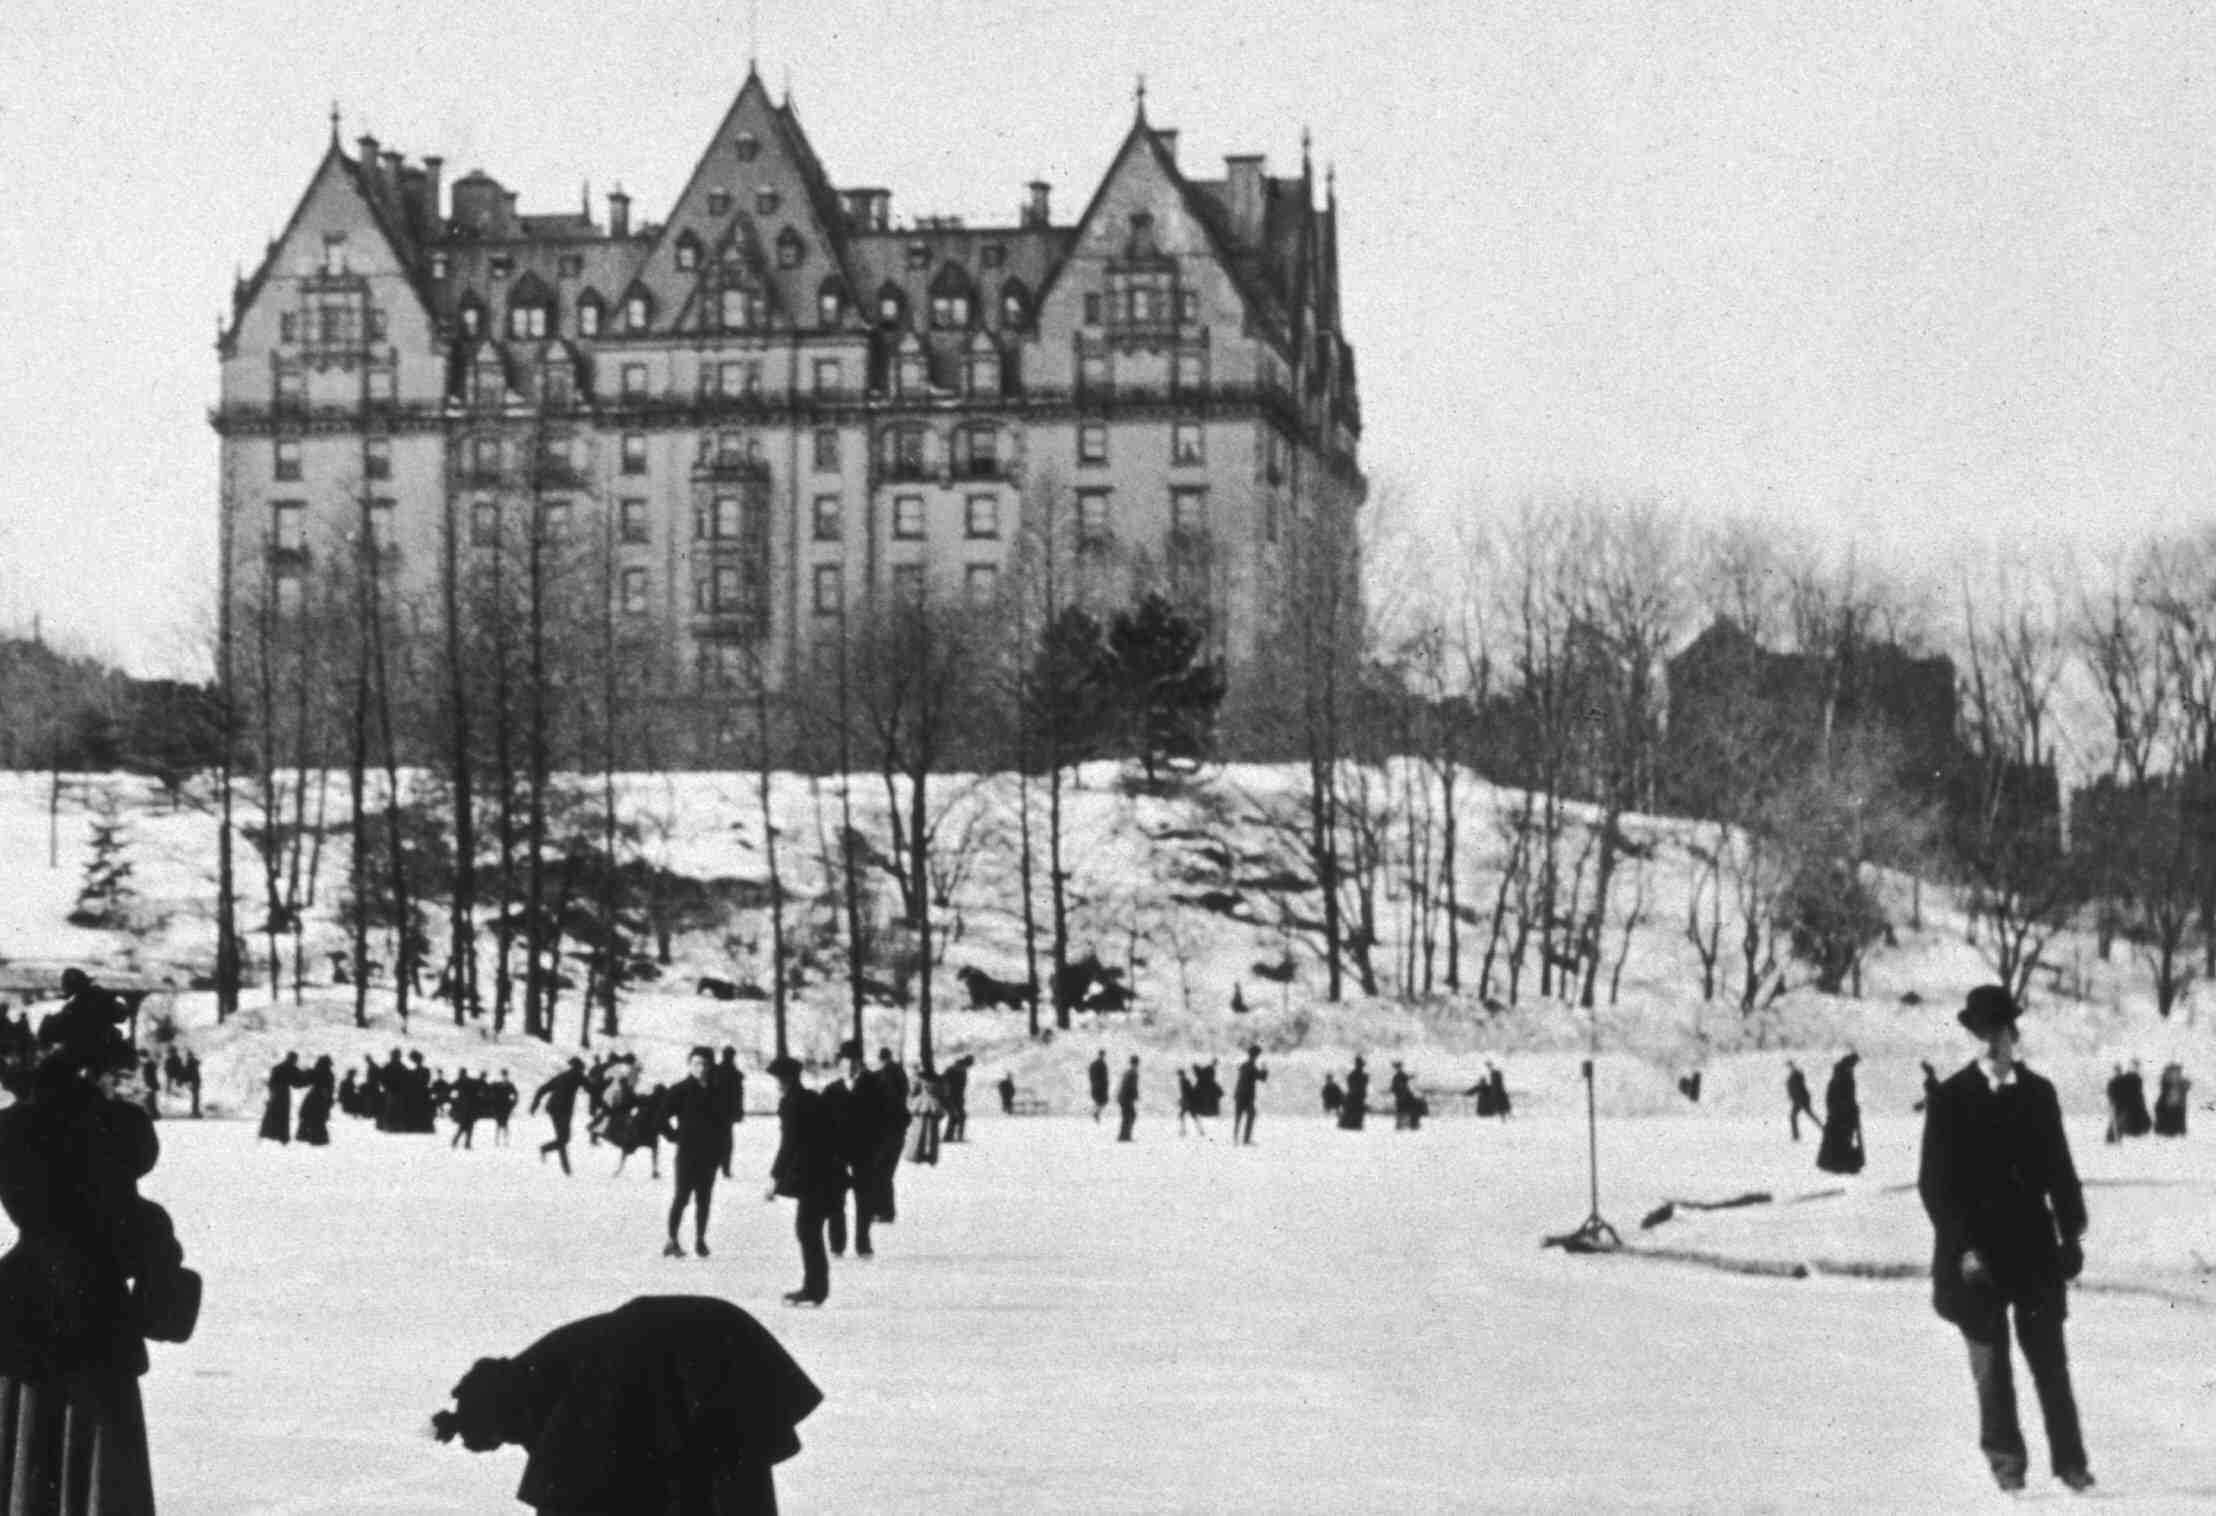 Historic black and white photo of mansion overlooking ice skaters in Central Park, 1894